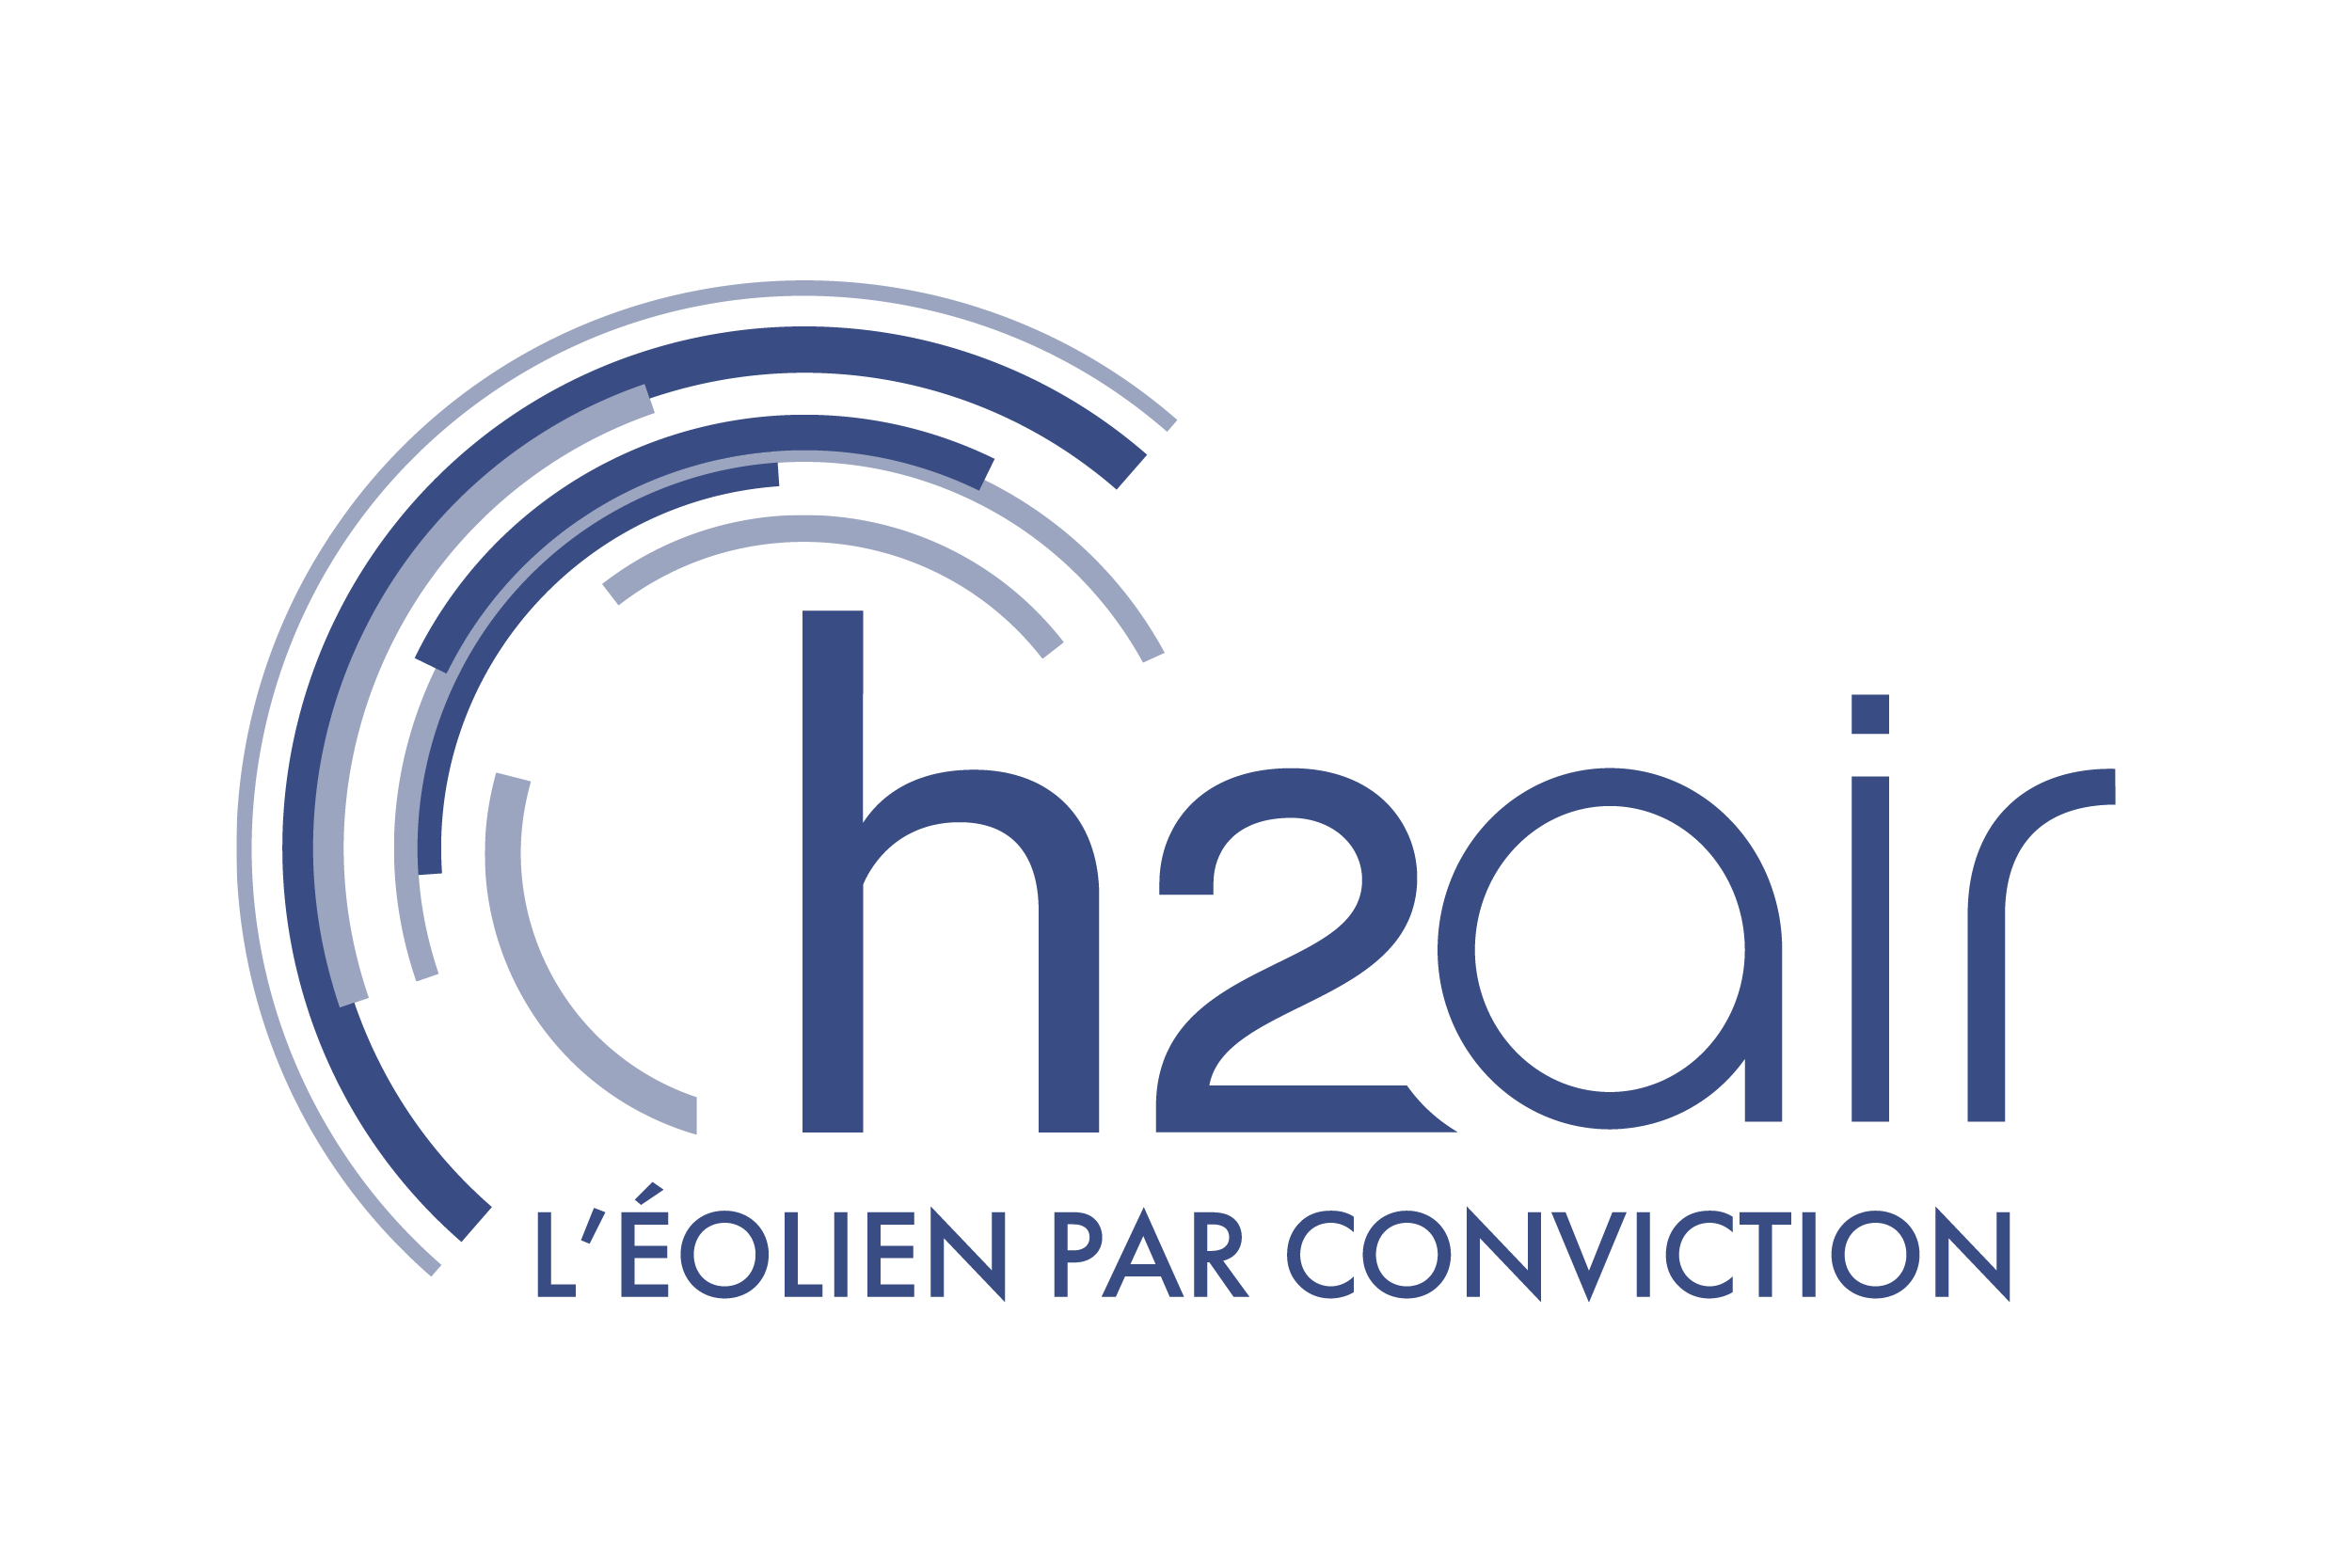 Petit logo h2air